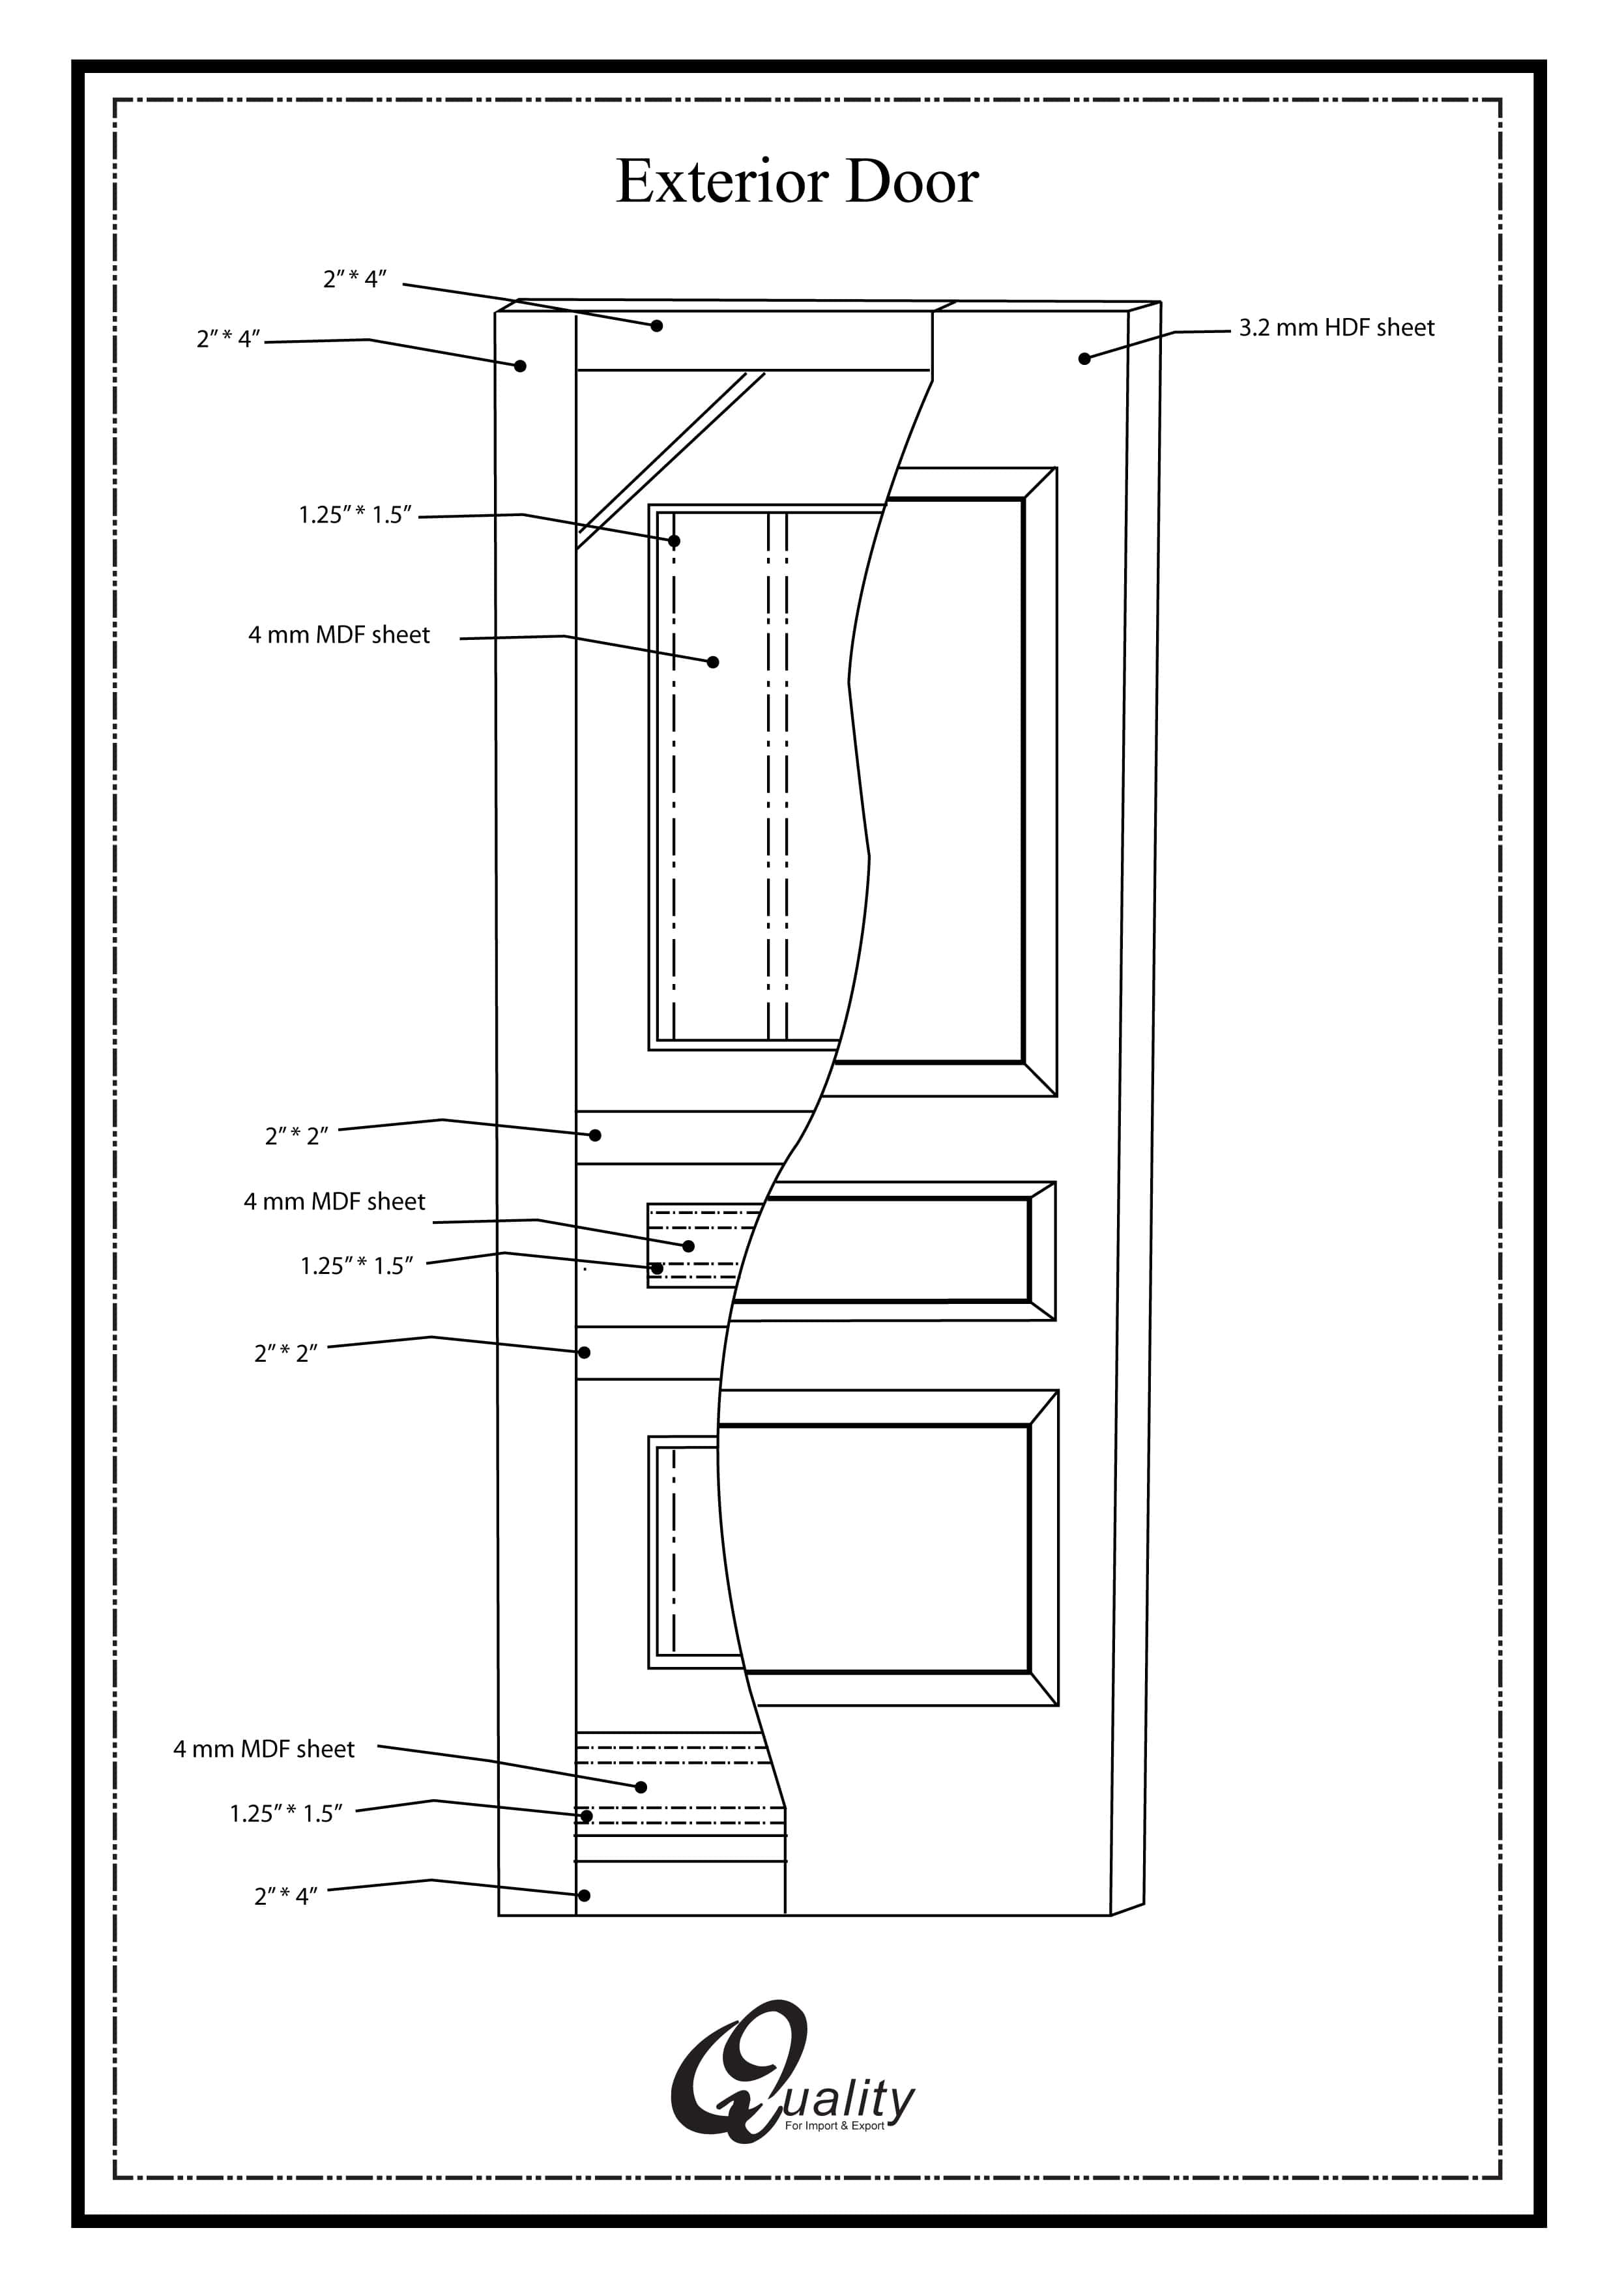 door frame parts diagram jeep cherokee wiring 1996 exterior 21 images